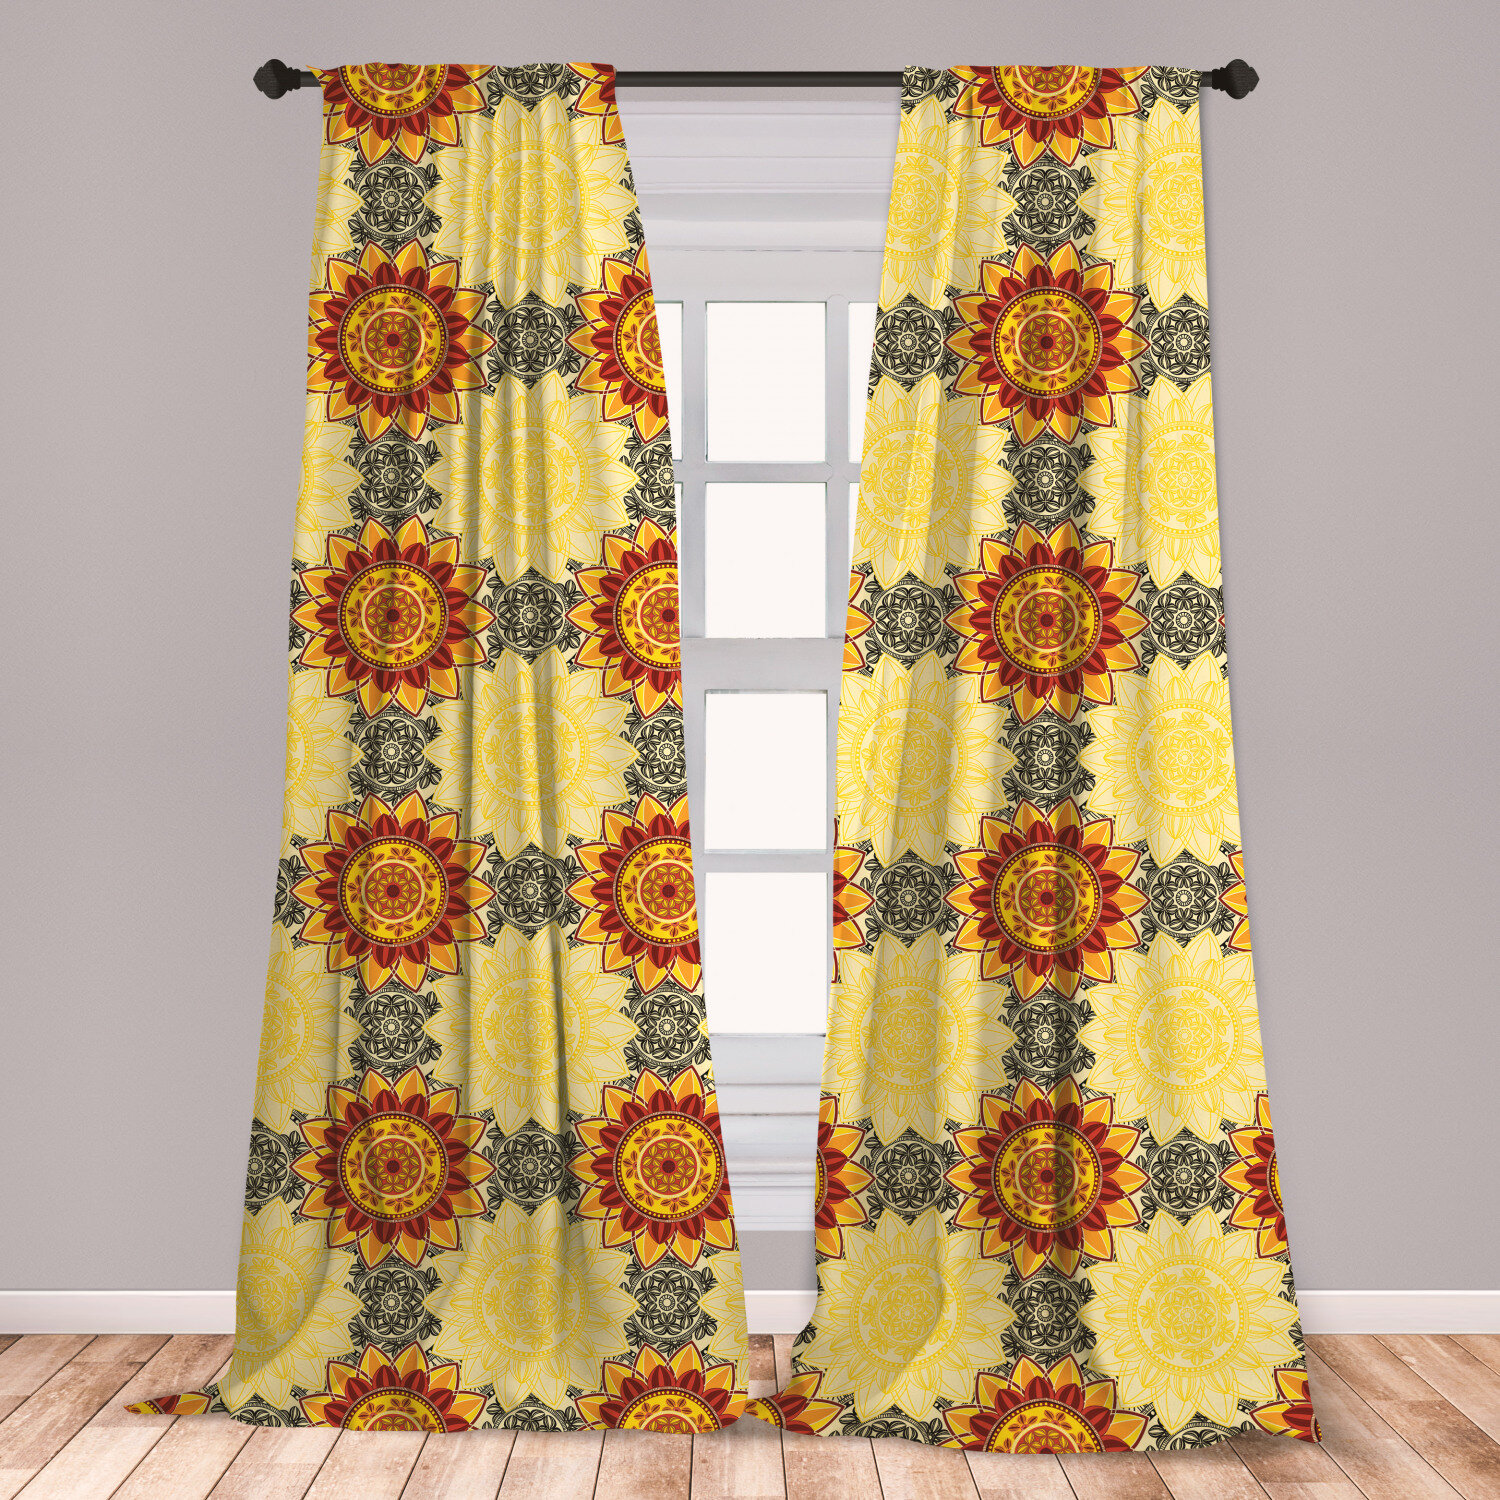 East Urban Home Ambesonne Mandala 2 Panel Curtain Set Vibrant Yellow Mandala With Floral Framework Petals Boho Lightweight Window Treatment Living Room Bedroom Decor 56 X 63 Yellow Black Ruby Wayfair